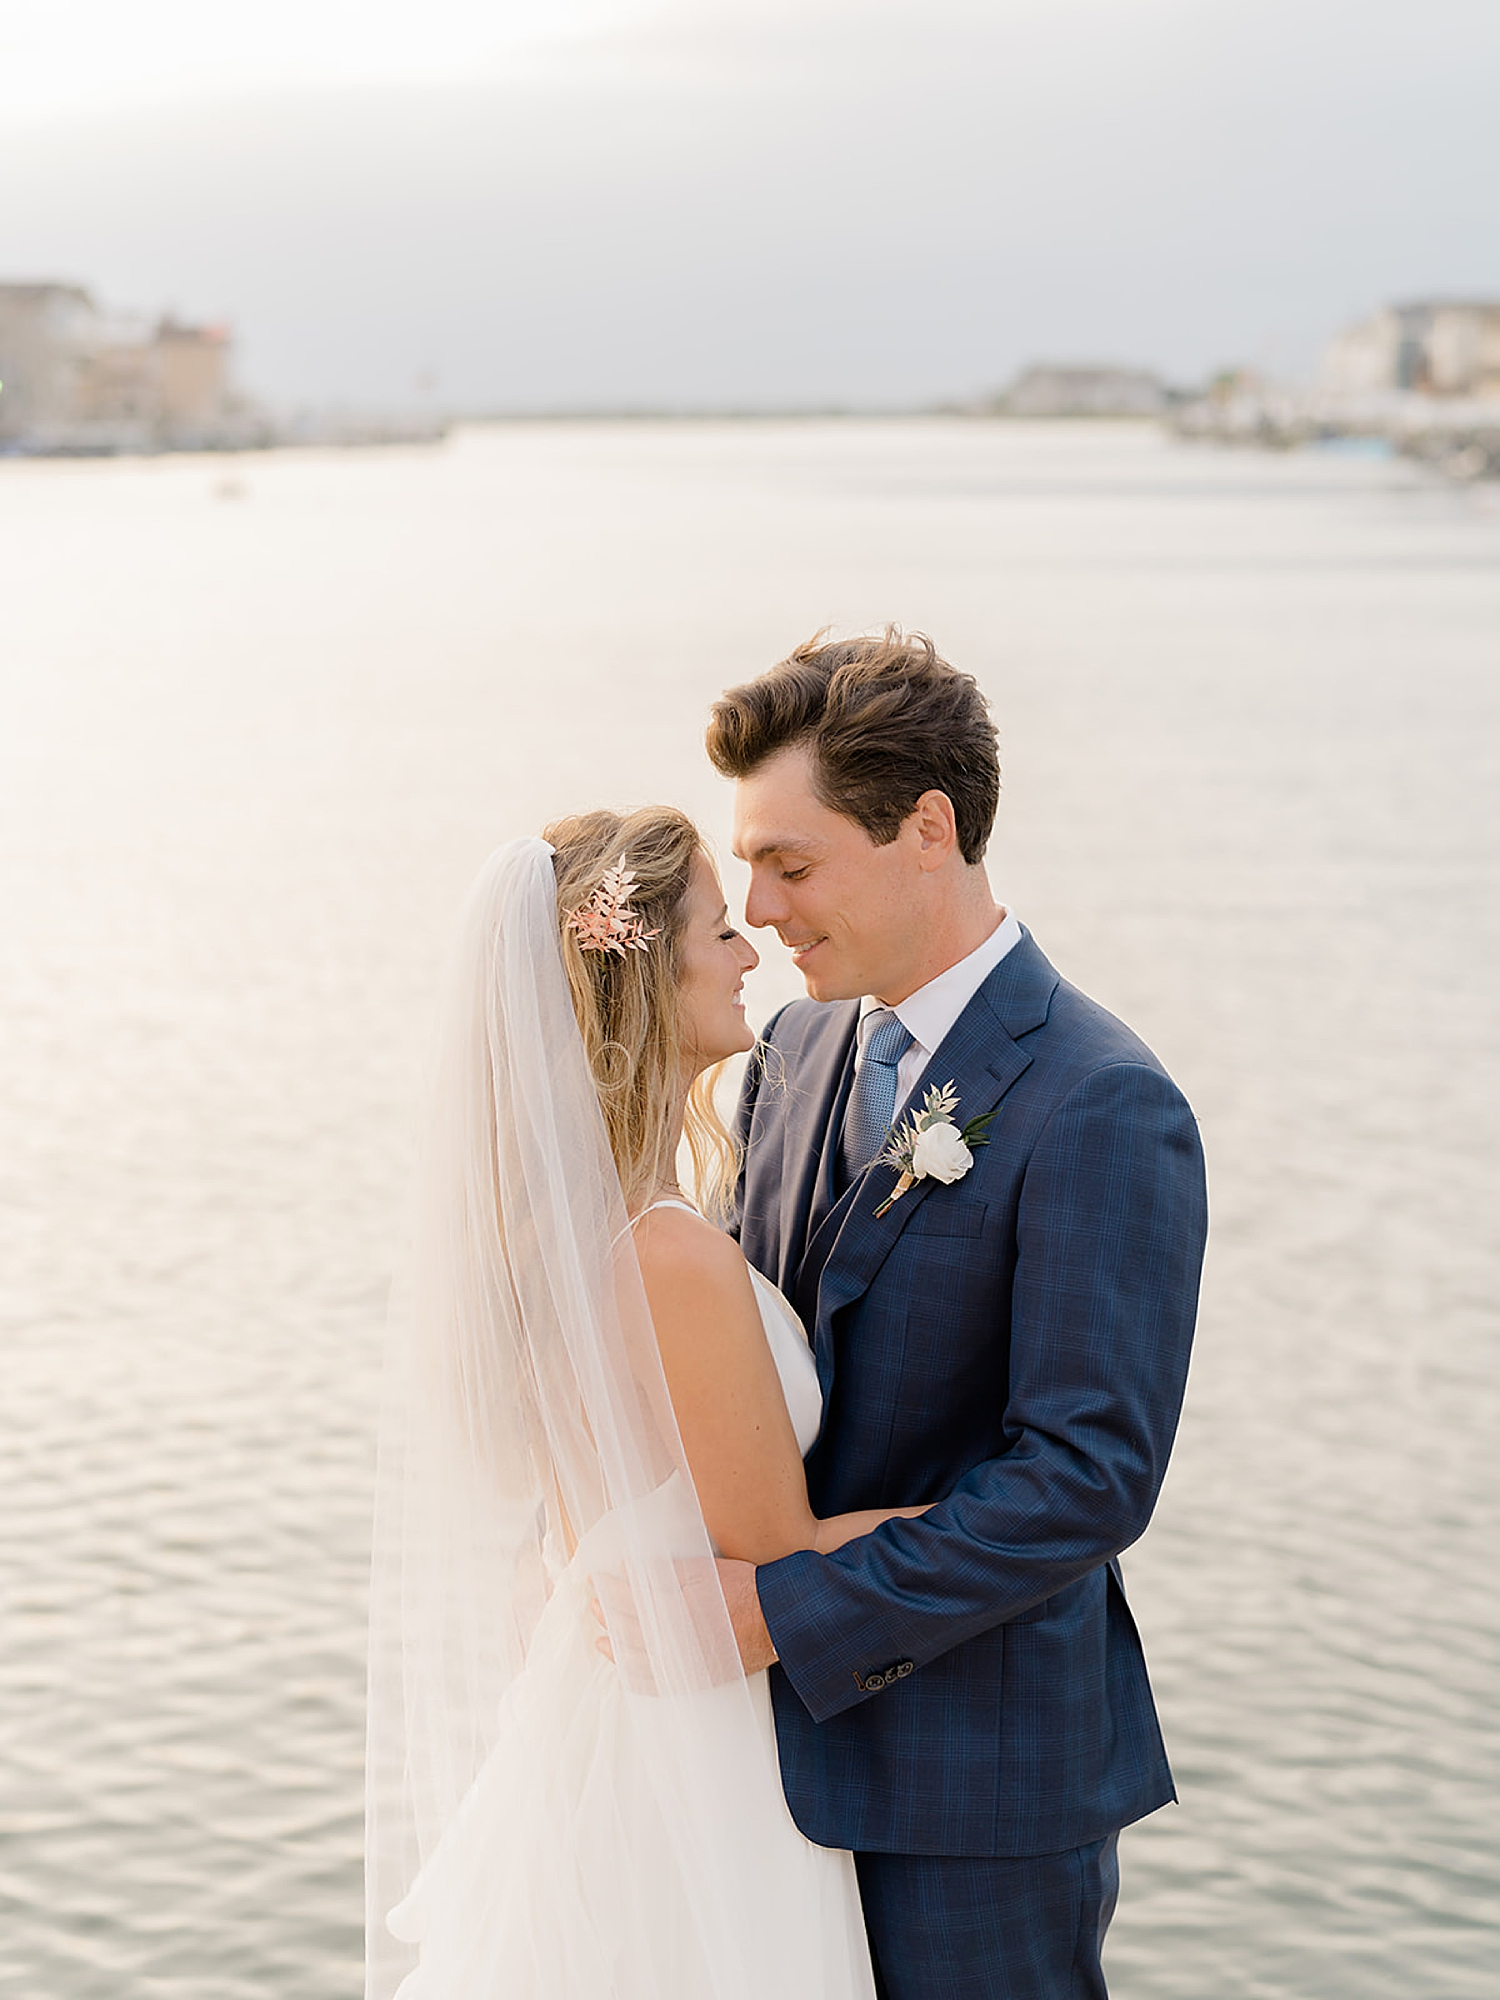 The Reeds at Shelter Haven Wedding Photography by Magdalena Studios 0026